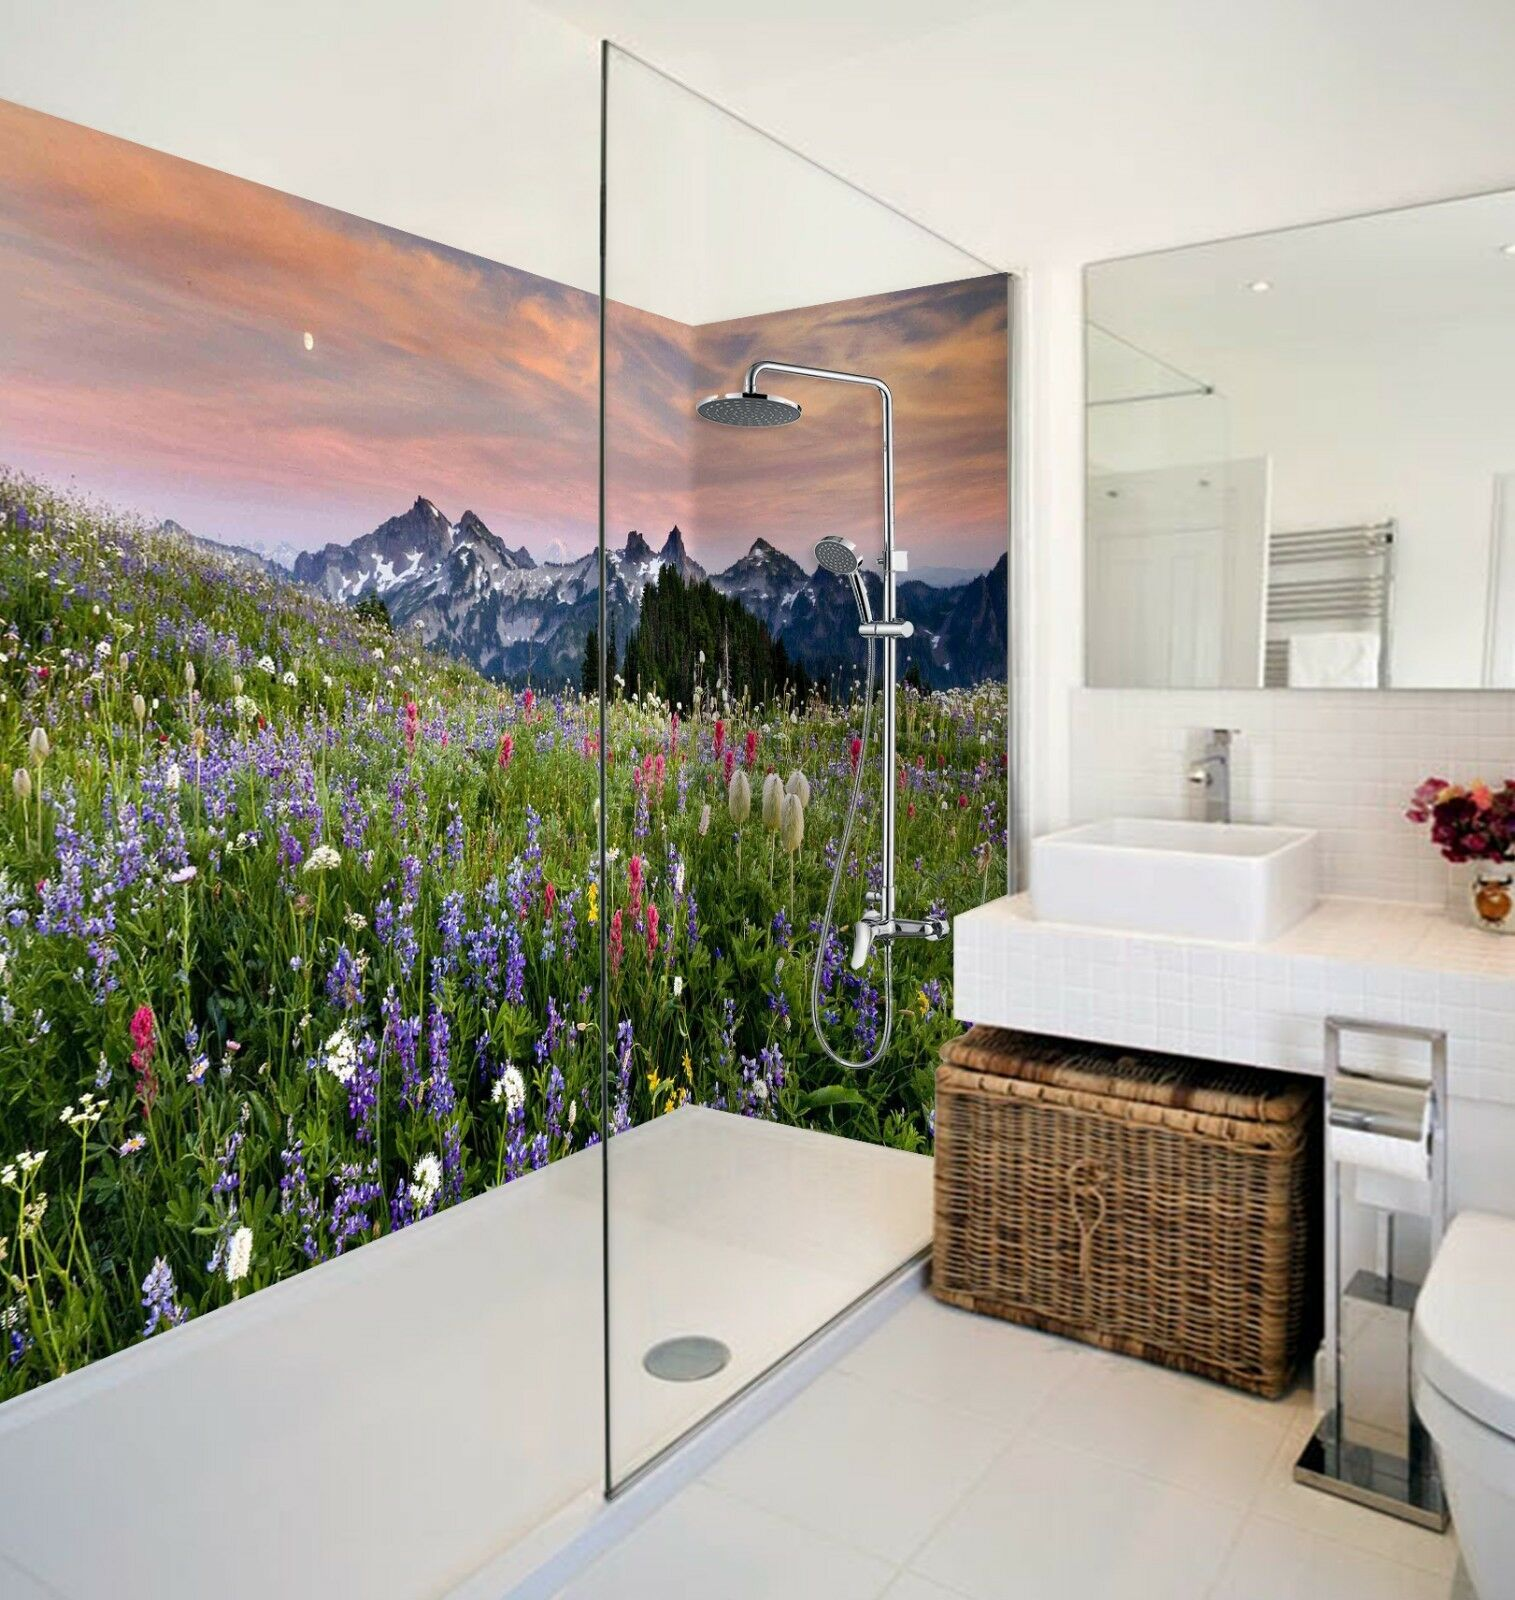 3D Sky Field Nature 67 WallPaper Bathroom Print Decal Wall Deco AJ WALL CA Carly